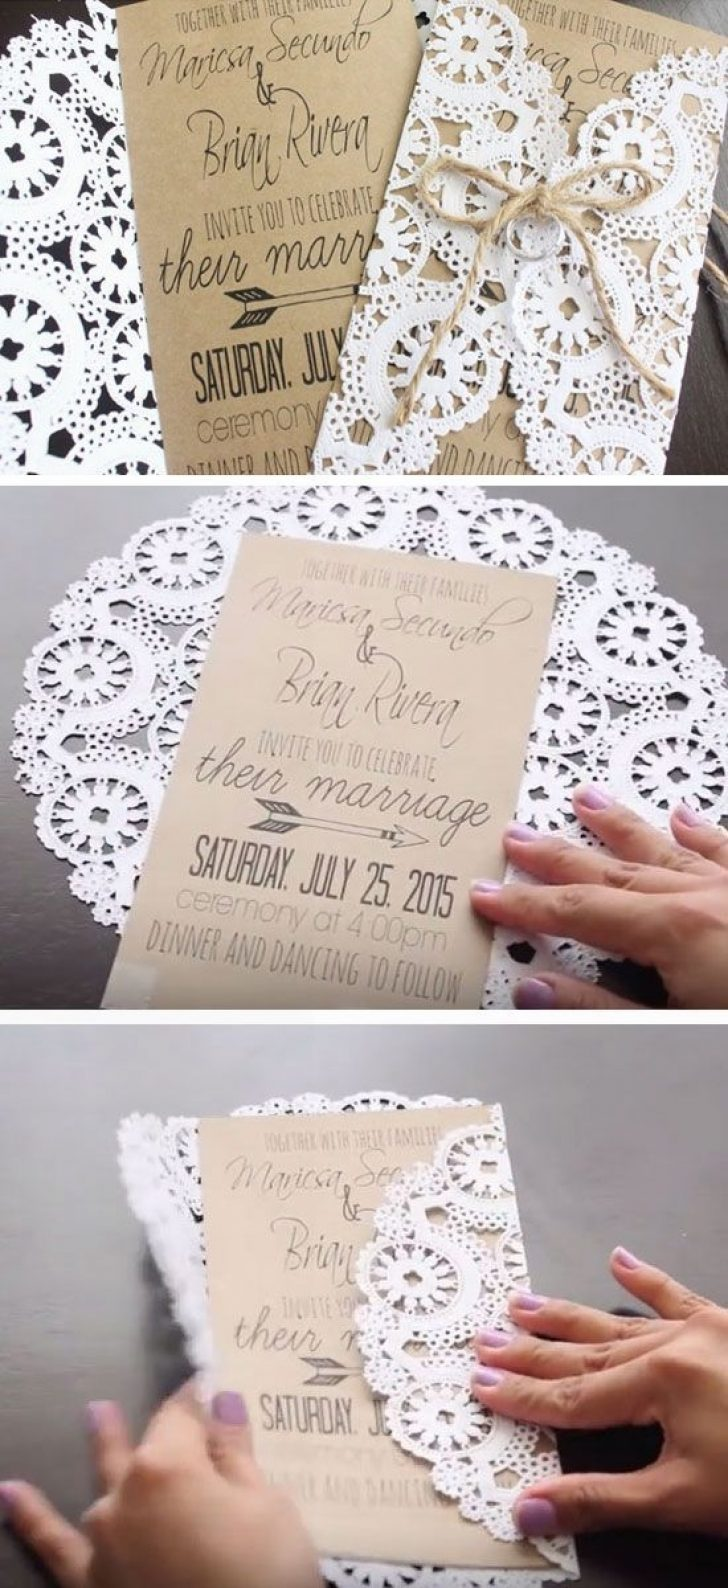 Permalink to Dyi Wedding Invites Gallery